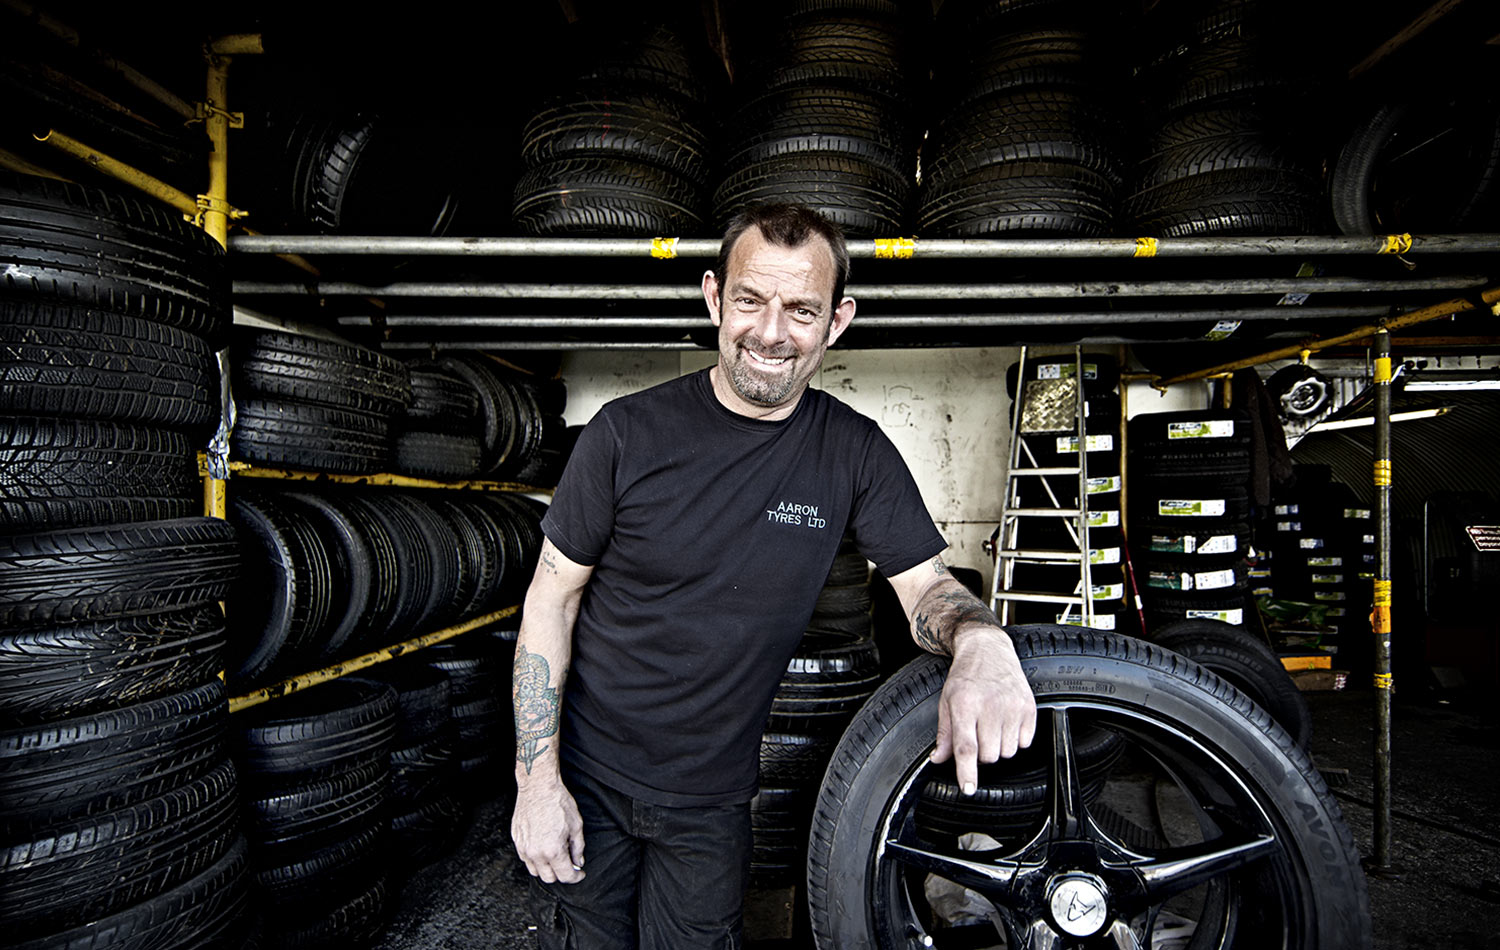 Leyton Tyreman. This gentleman has worked for over 20 years running his own tyre business.